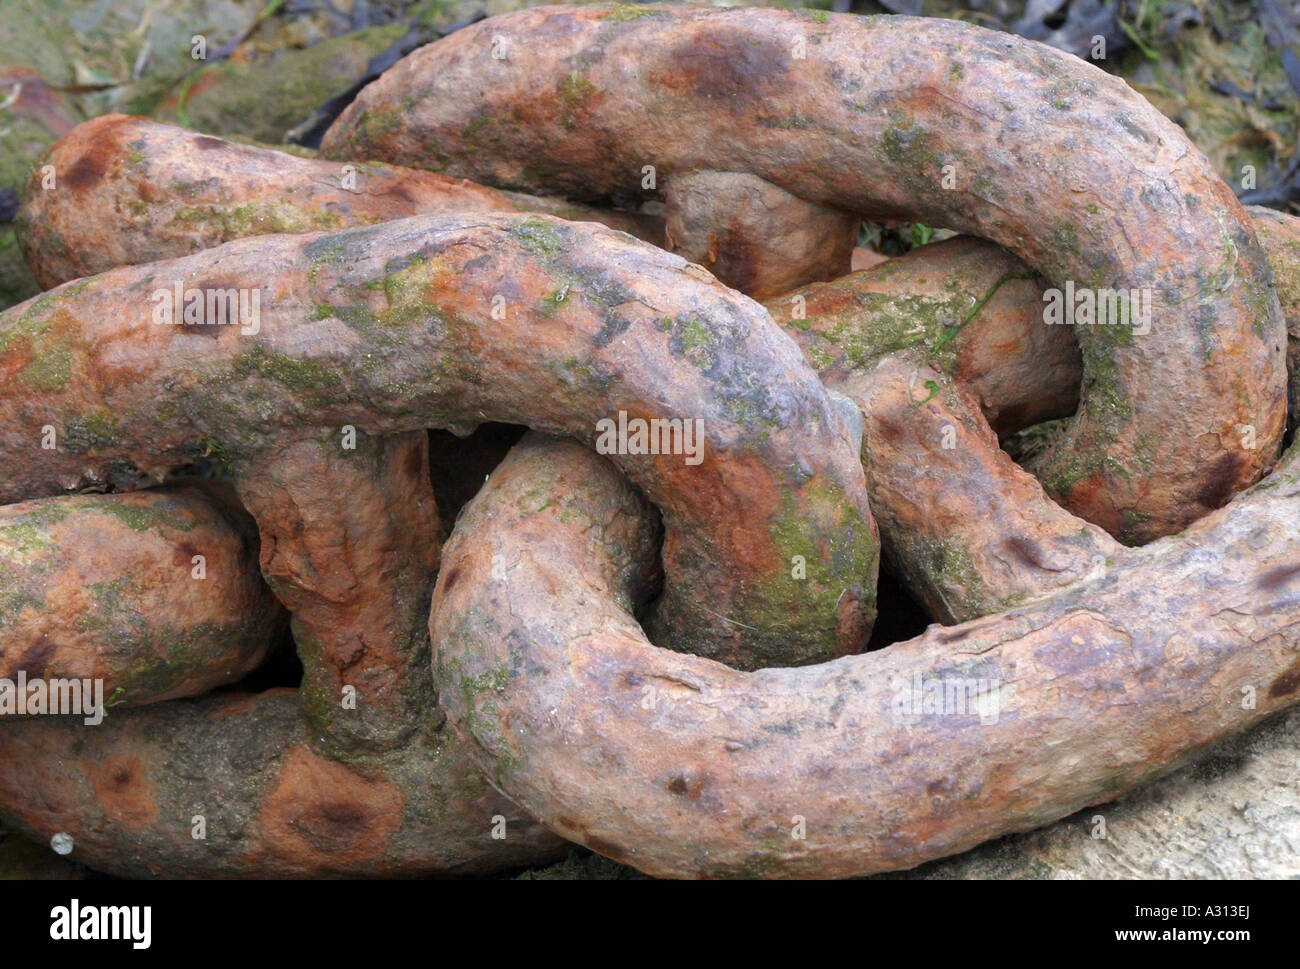 Heavy rusty chain links - Stock Image